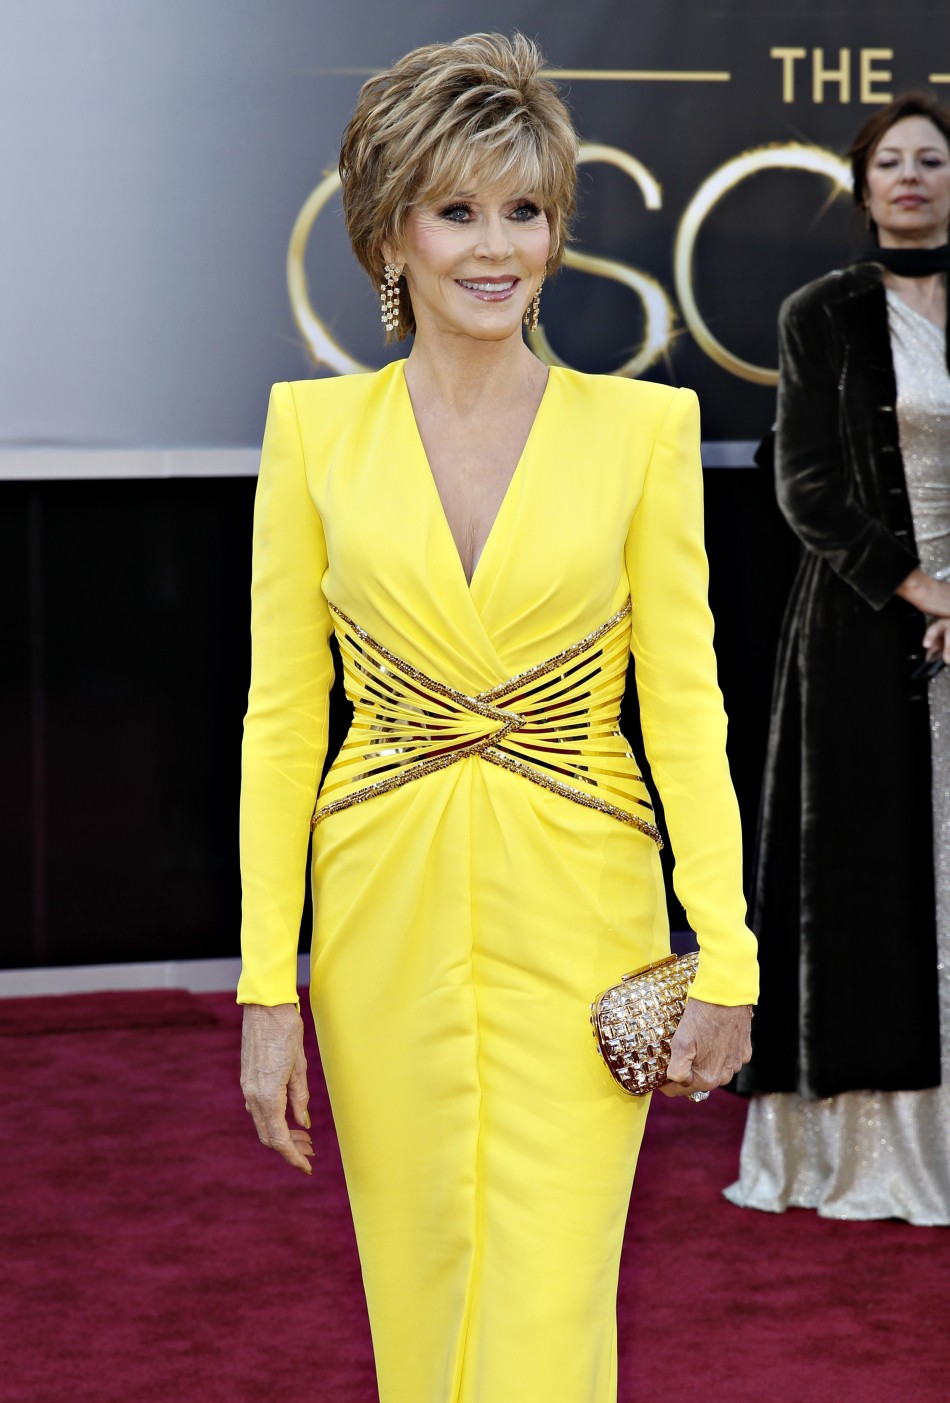 Two-time Academy Award winner Jane Fonda, wearing a yellow Versace gown, arrives at the 85th Academy Awards in Hollywood, California February 24, 2013.